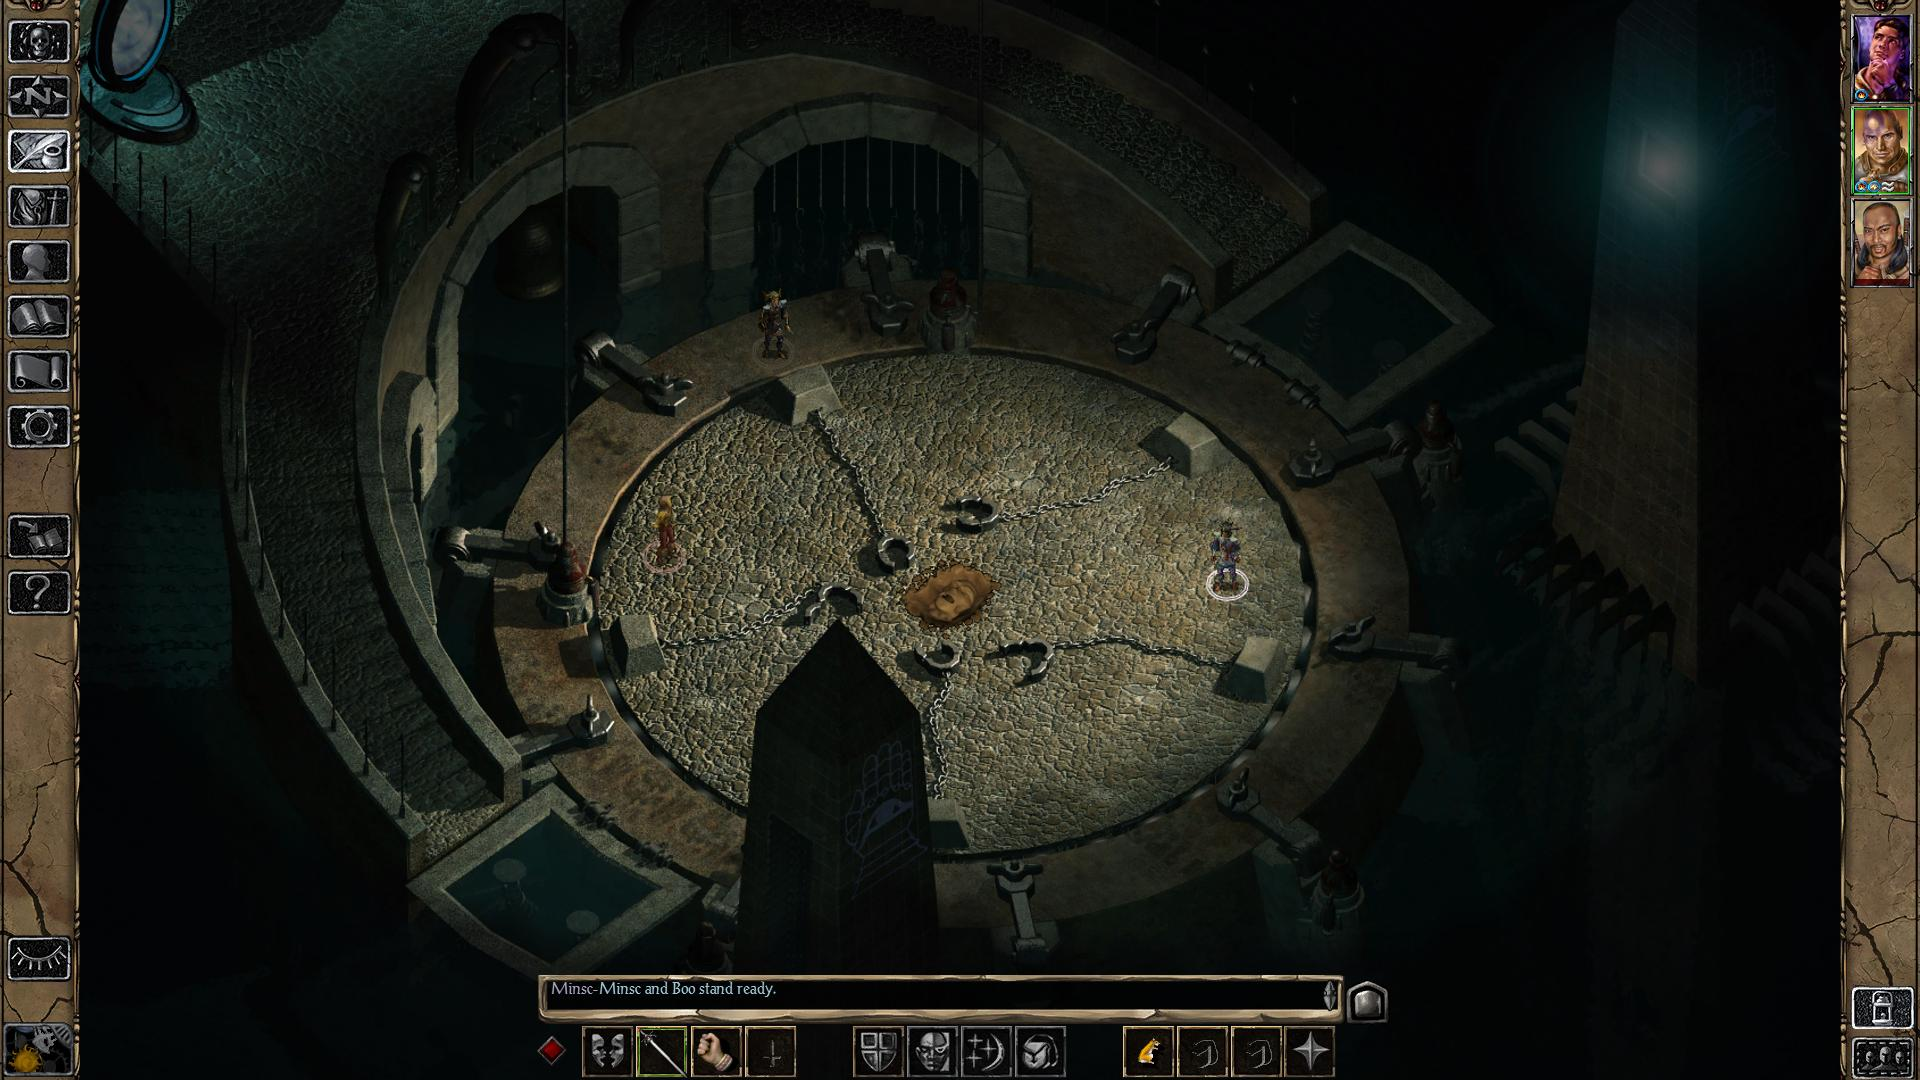 baldur's gate enhanced edidion 2 in game